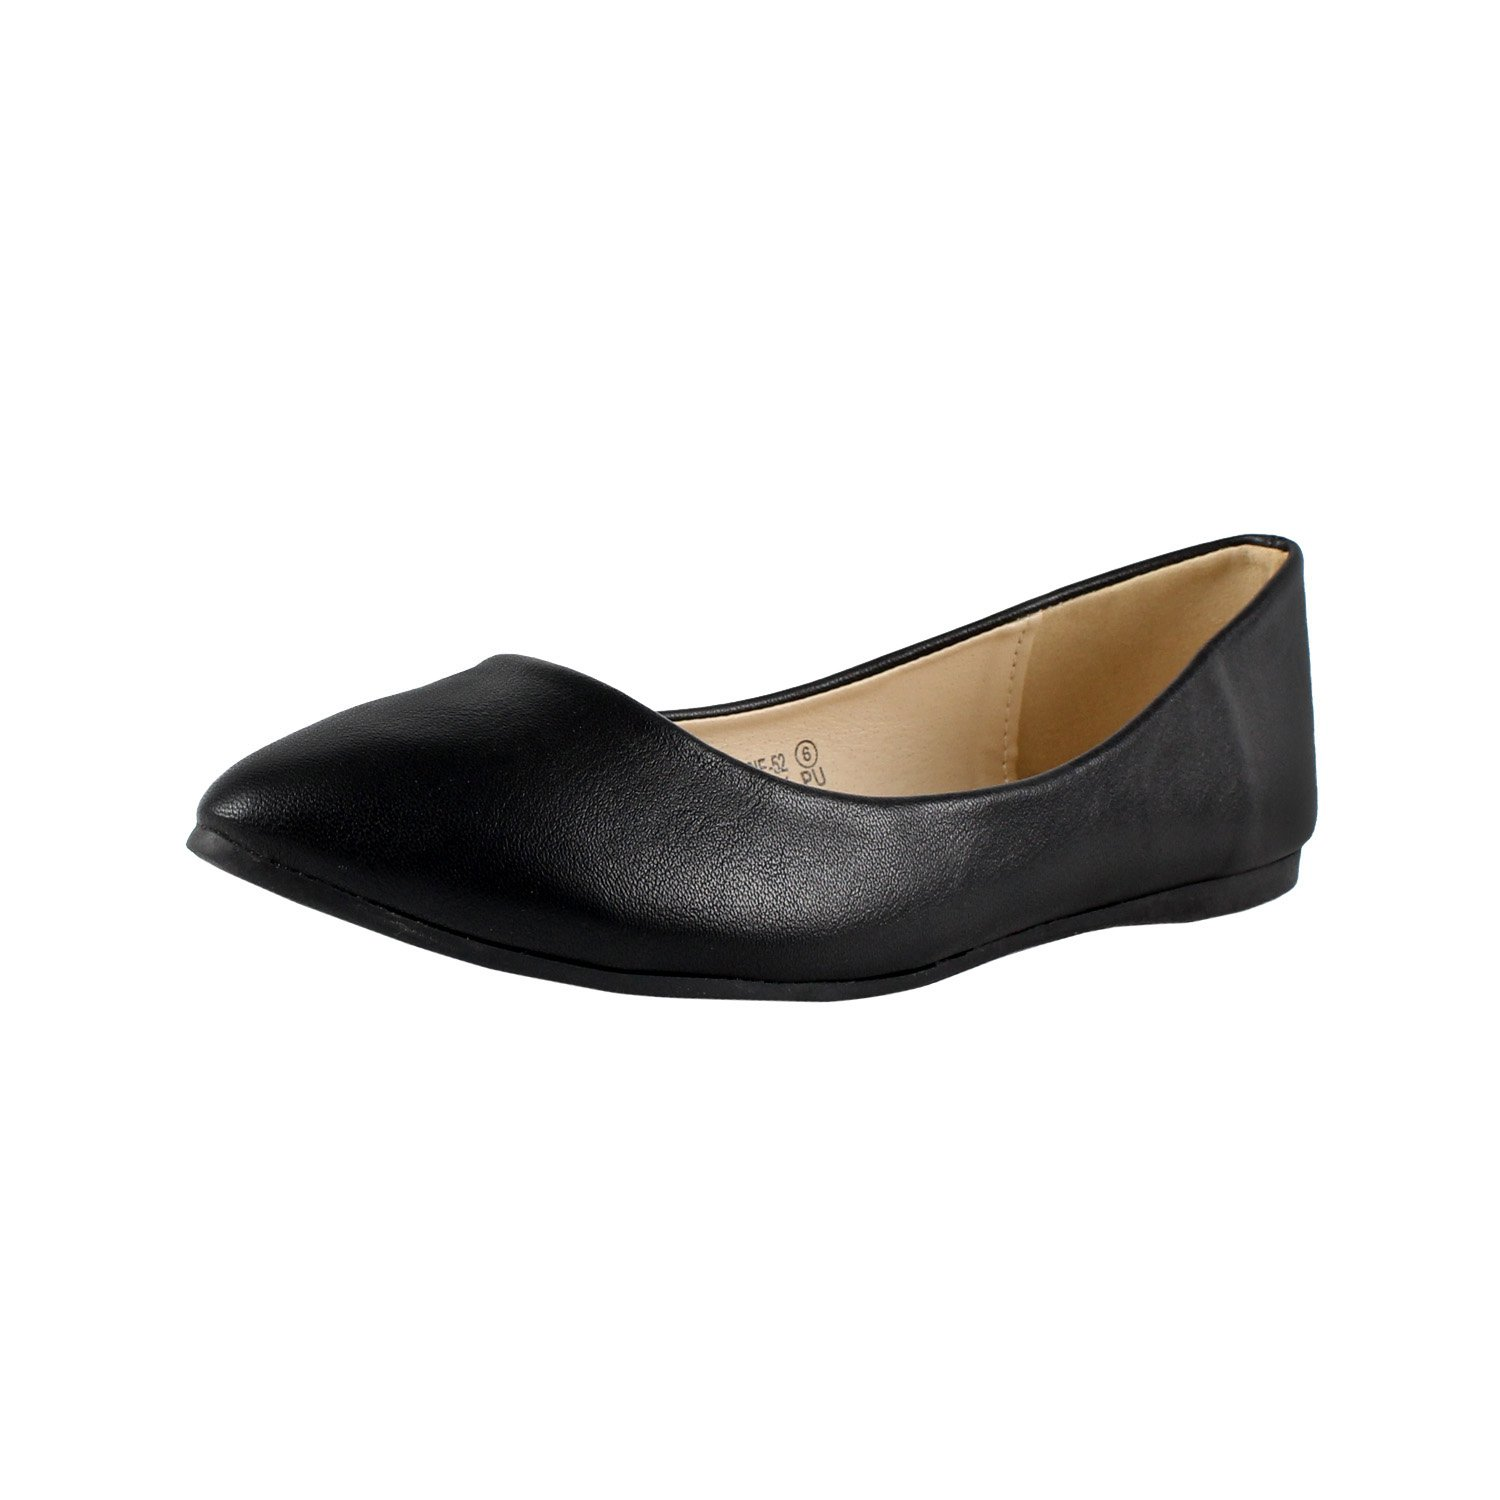 Bella marie Angie-52 Women's Classic Pointy Toe Ballet PU Slip On Flats